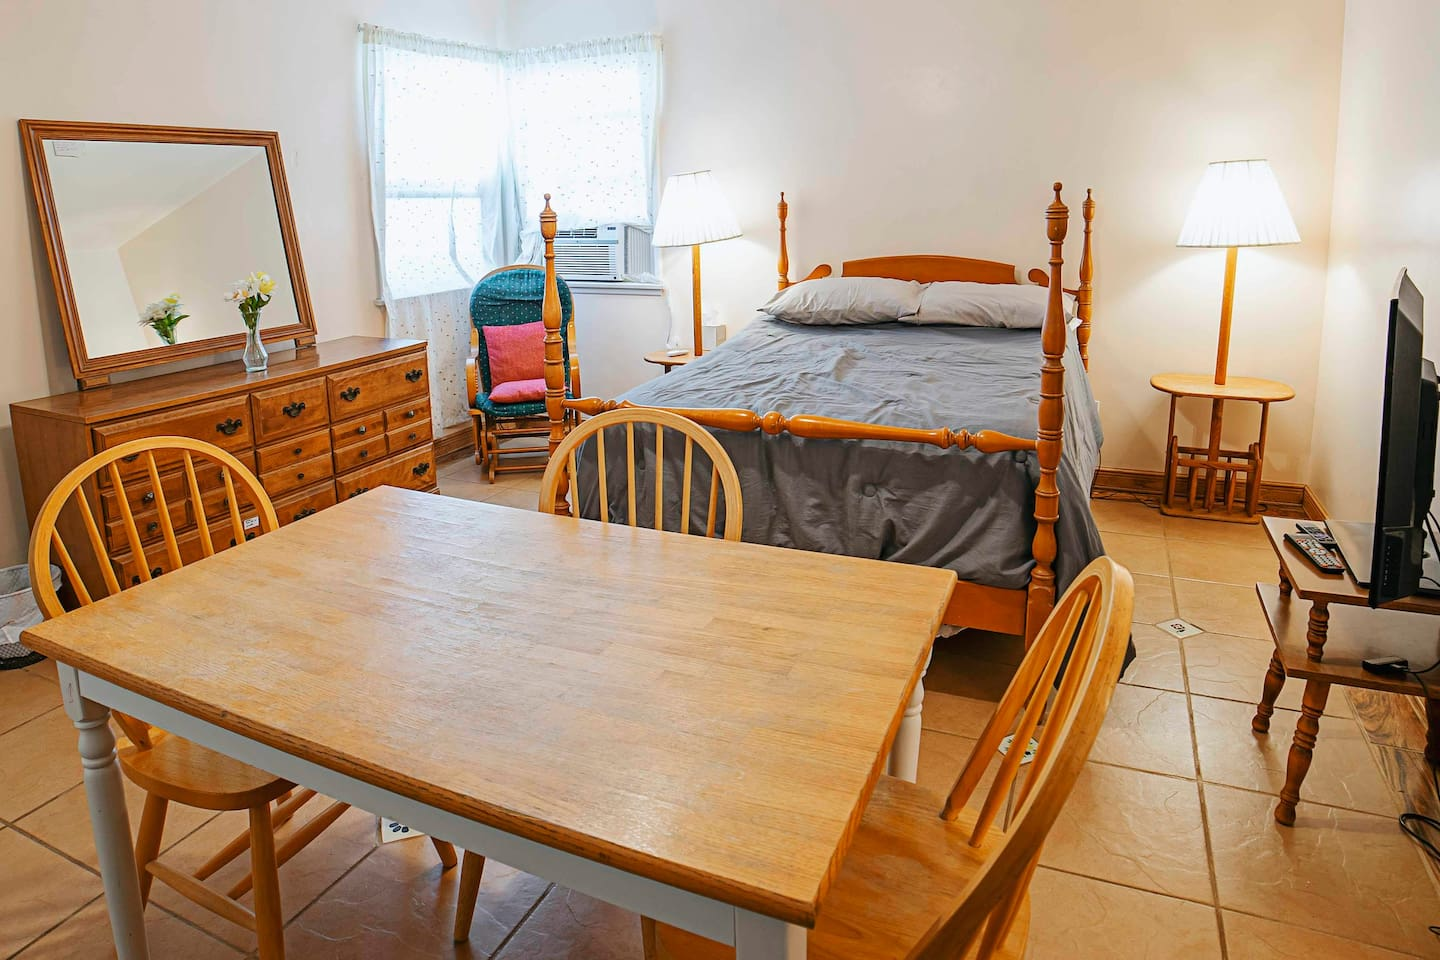 Bedroom offers full size bed, dresser, dining table, TV, cooking corner, heating and air conditioning.